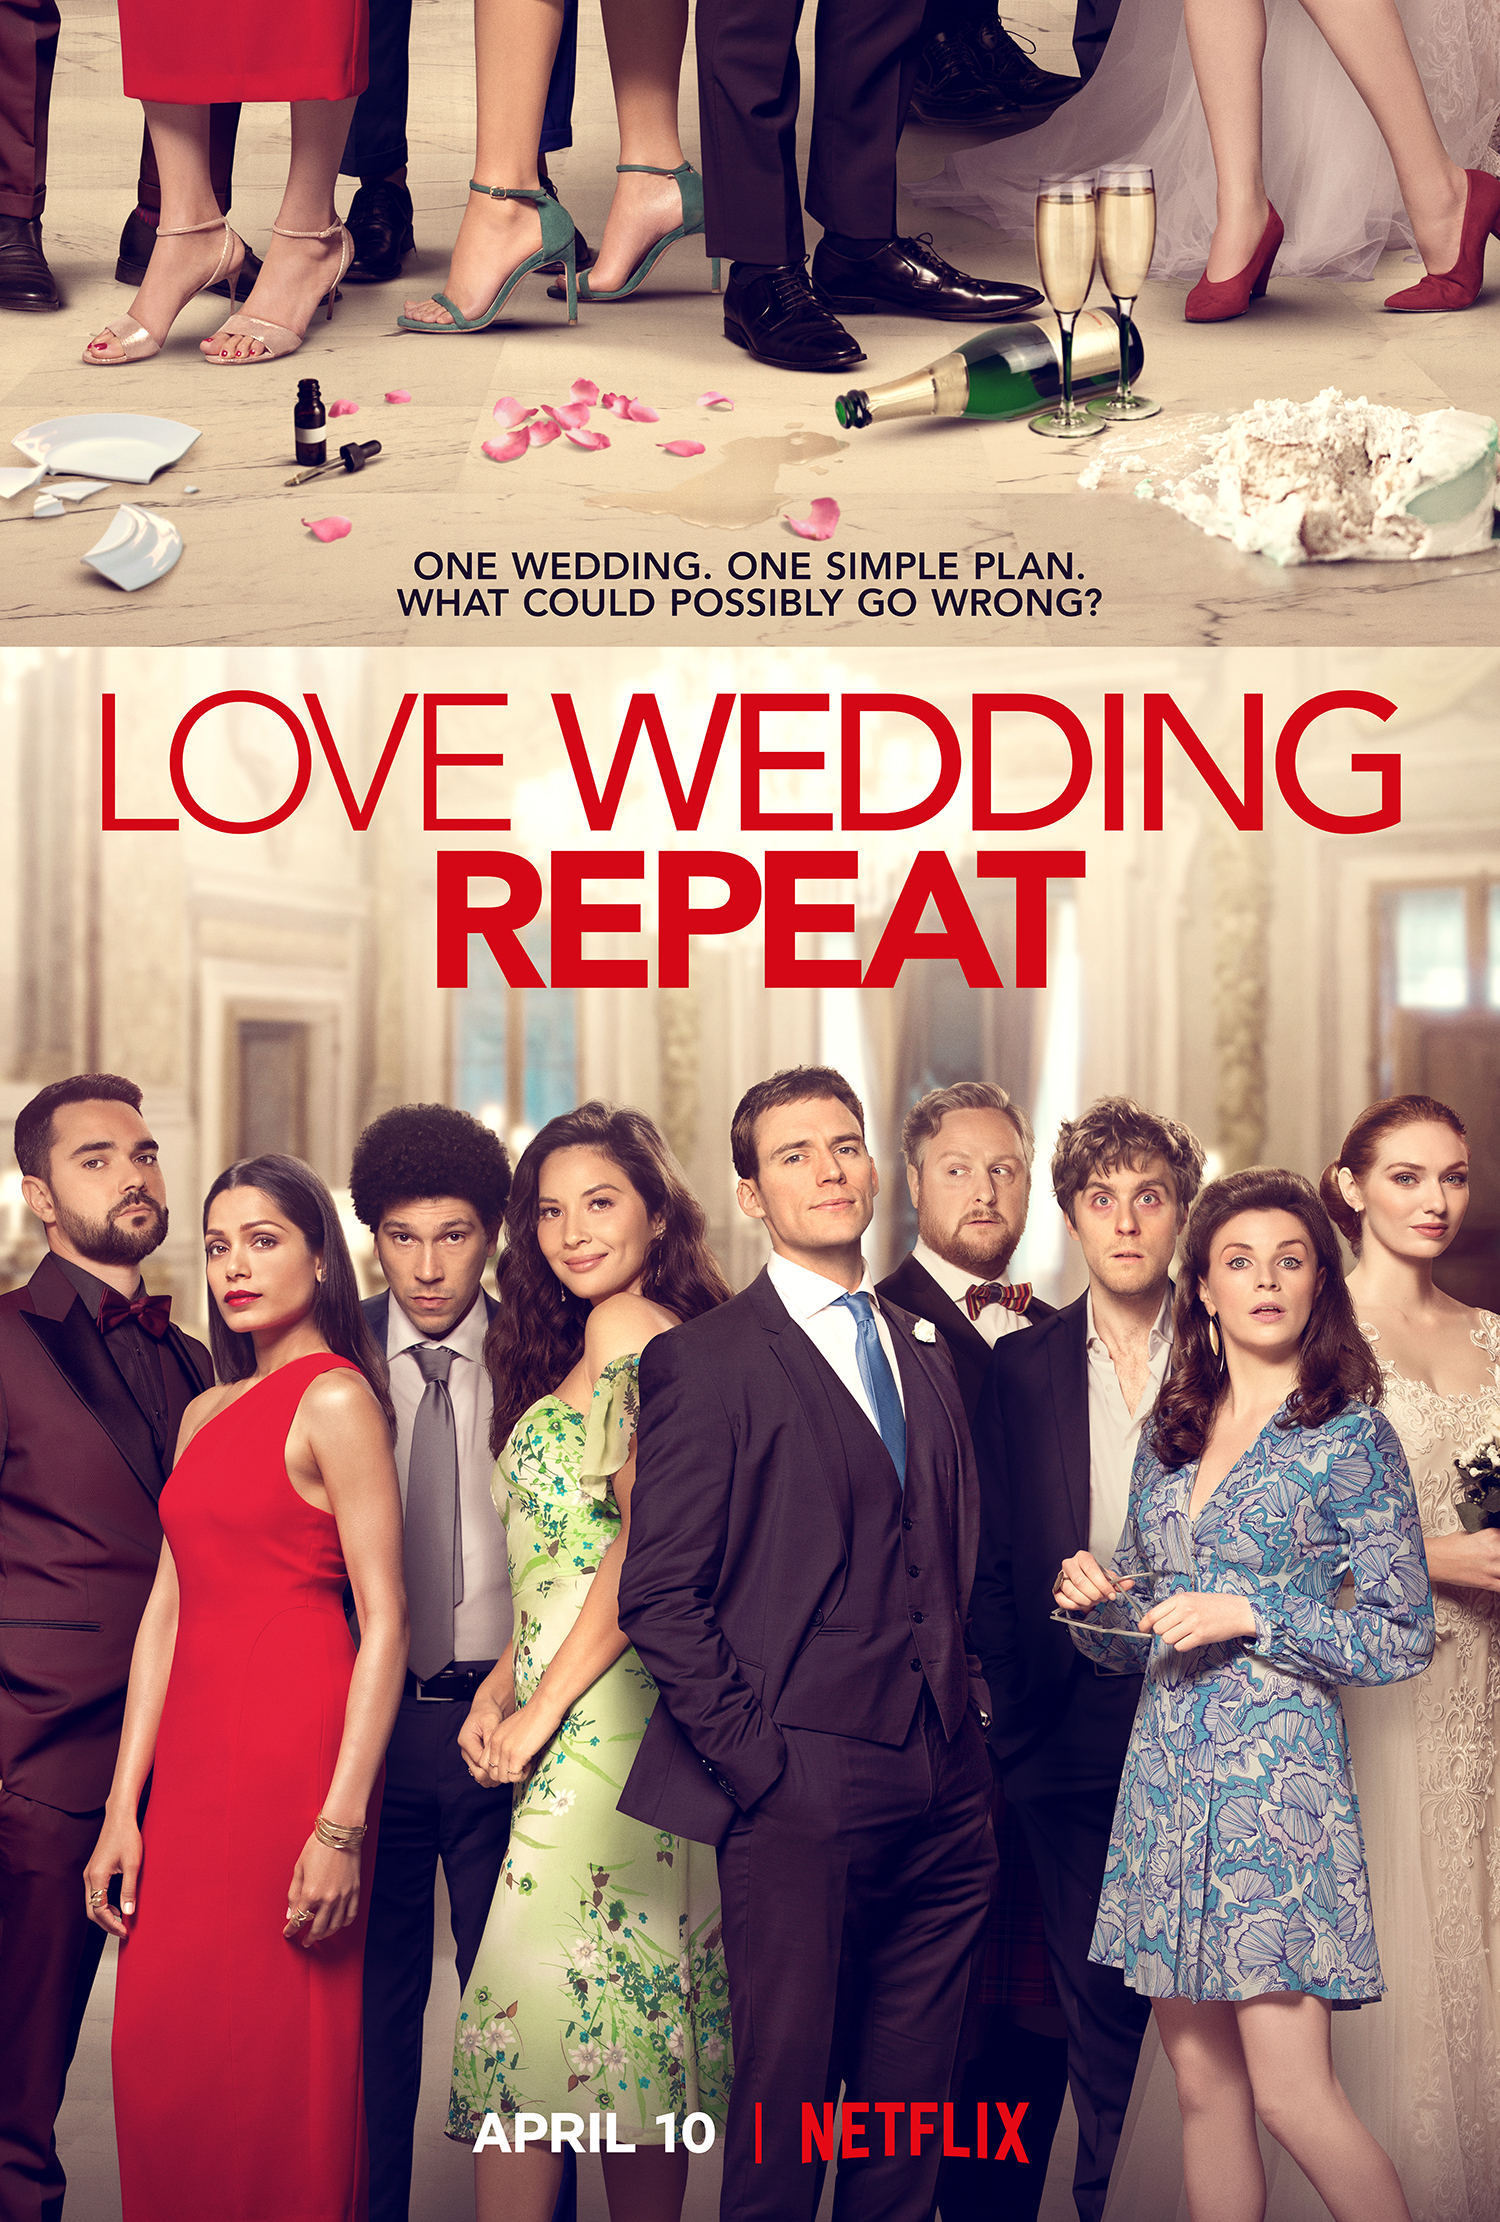 Love Wedding Repeat (2020) - IMDb